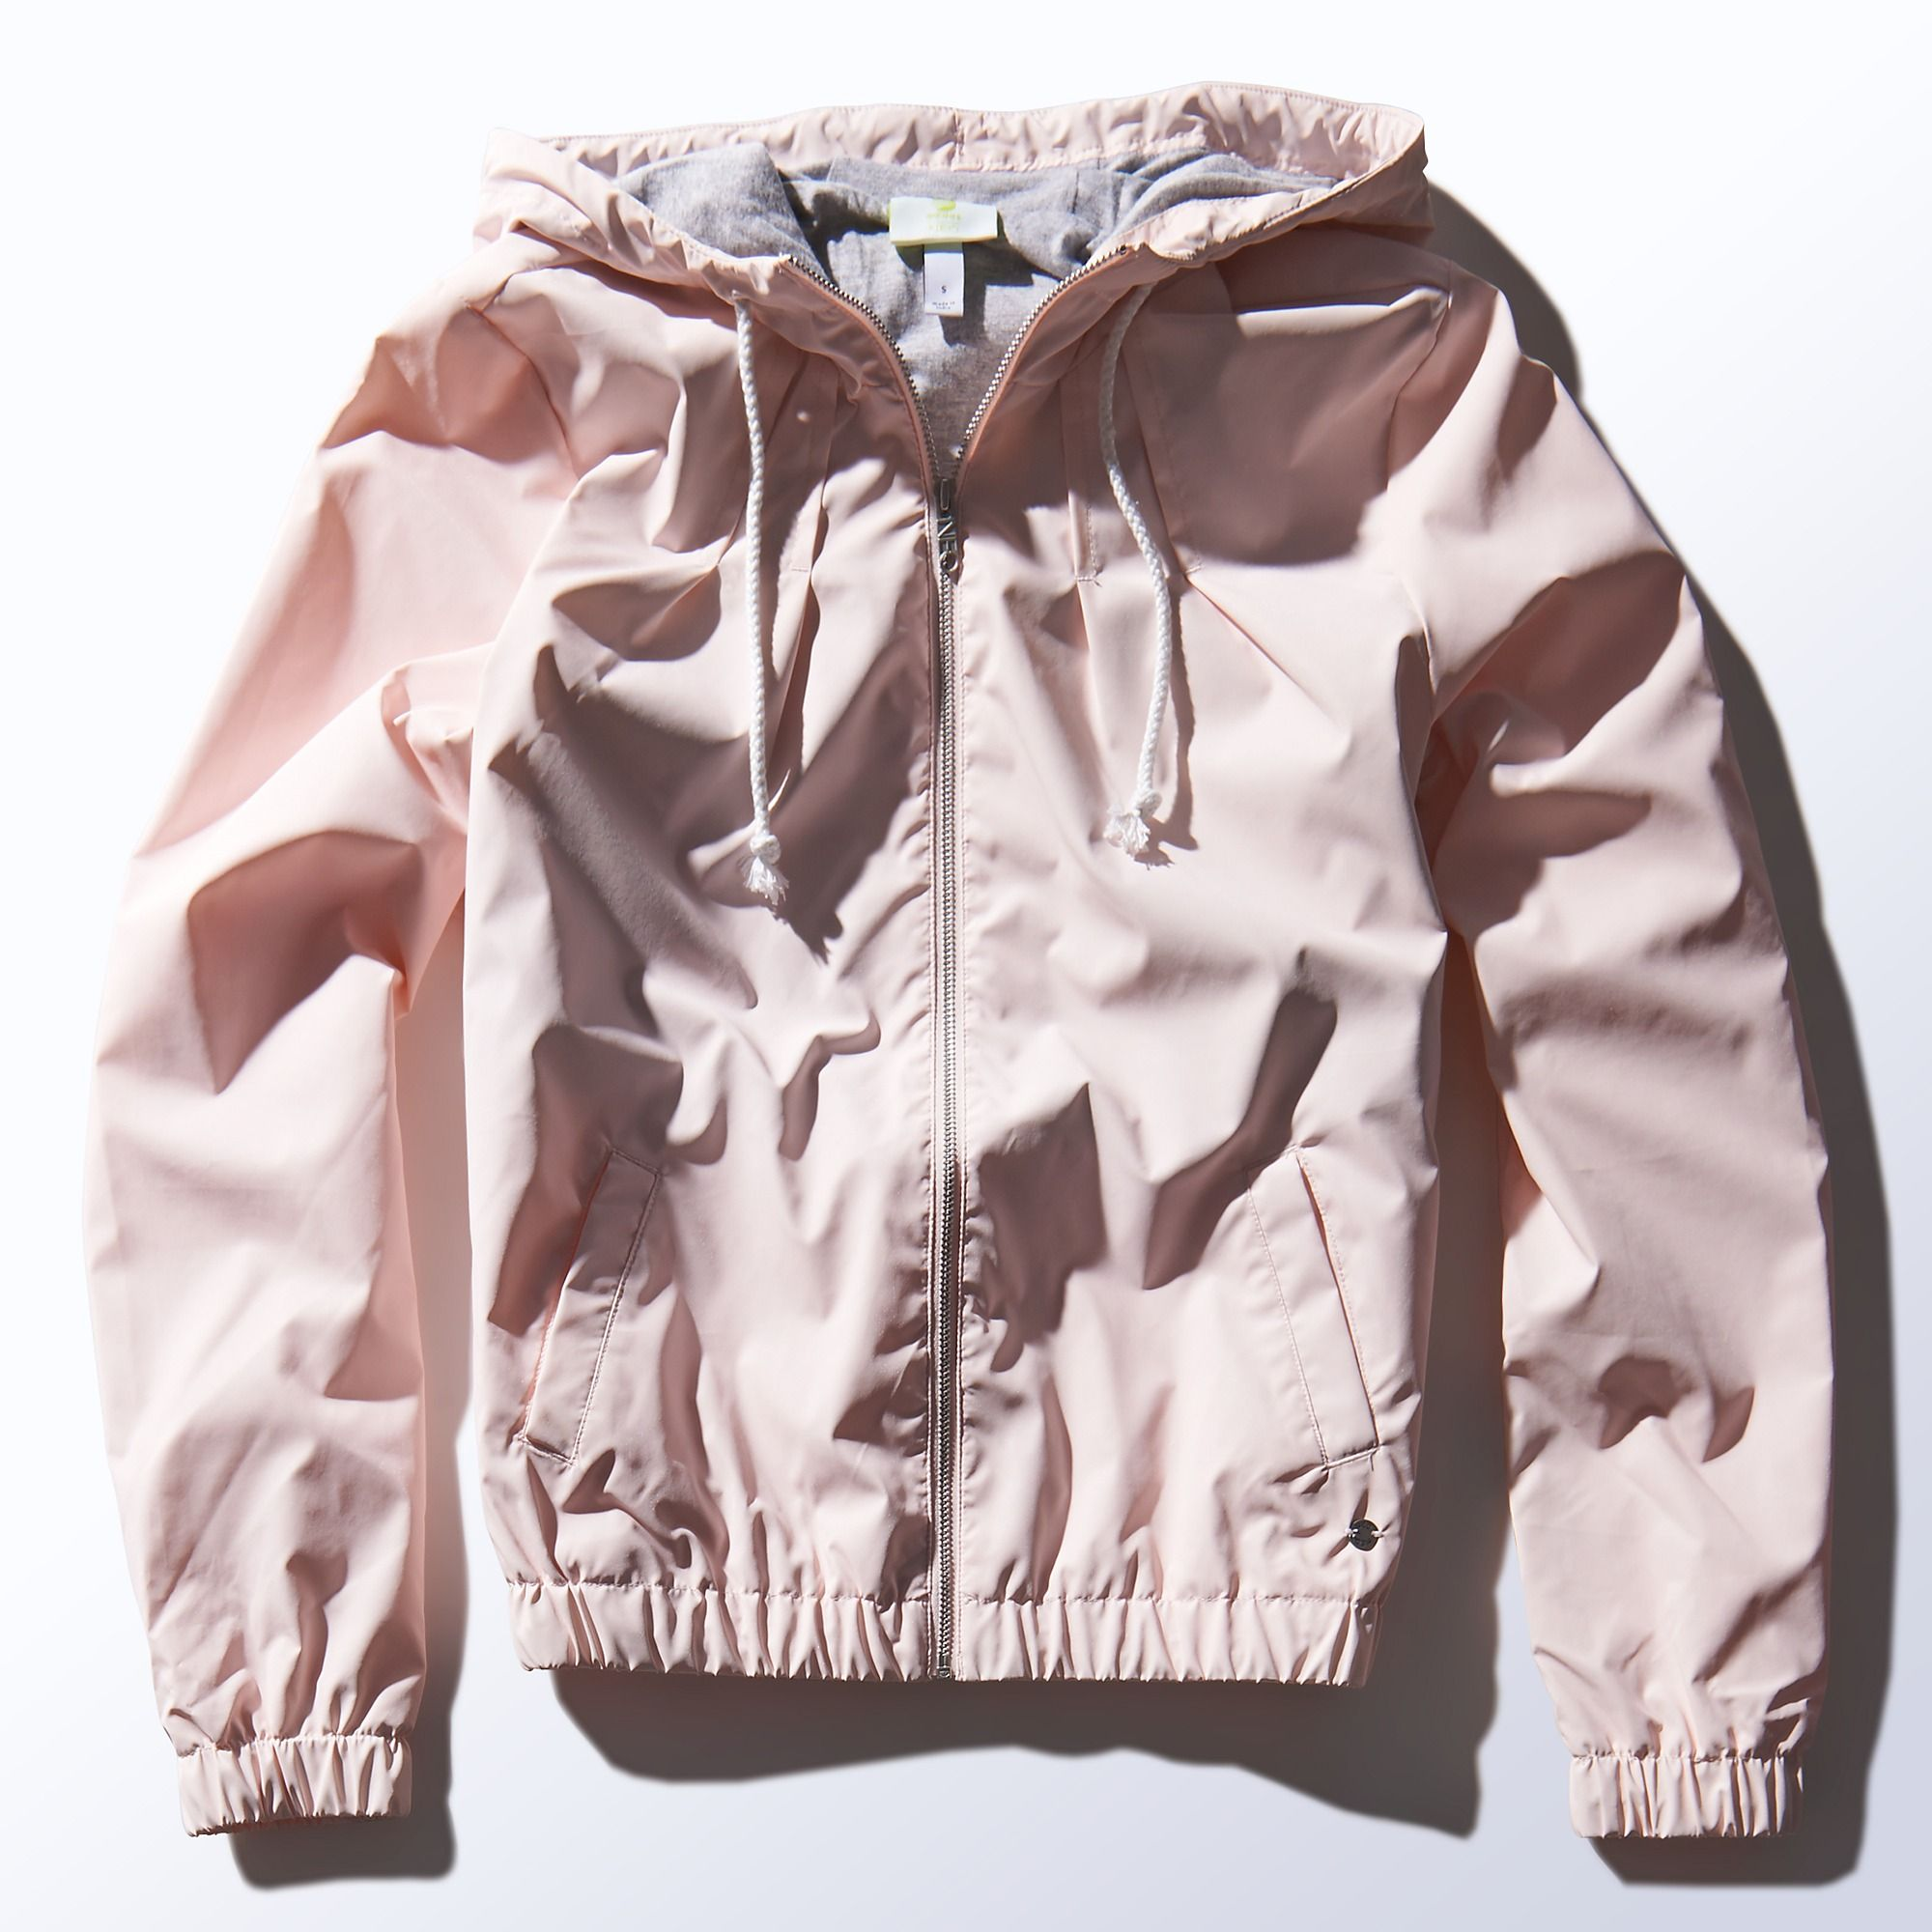 rose gold adidas outfit